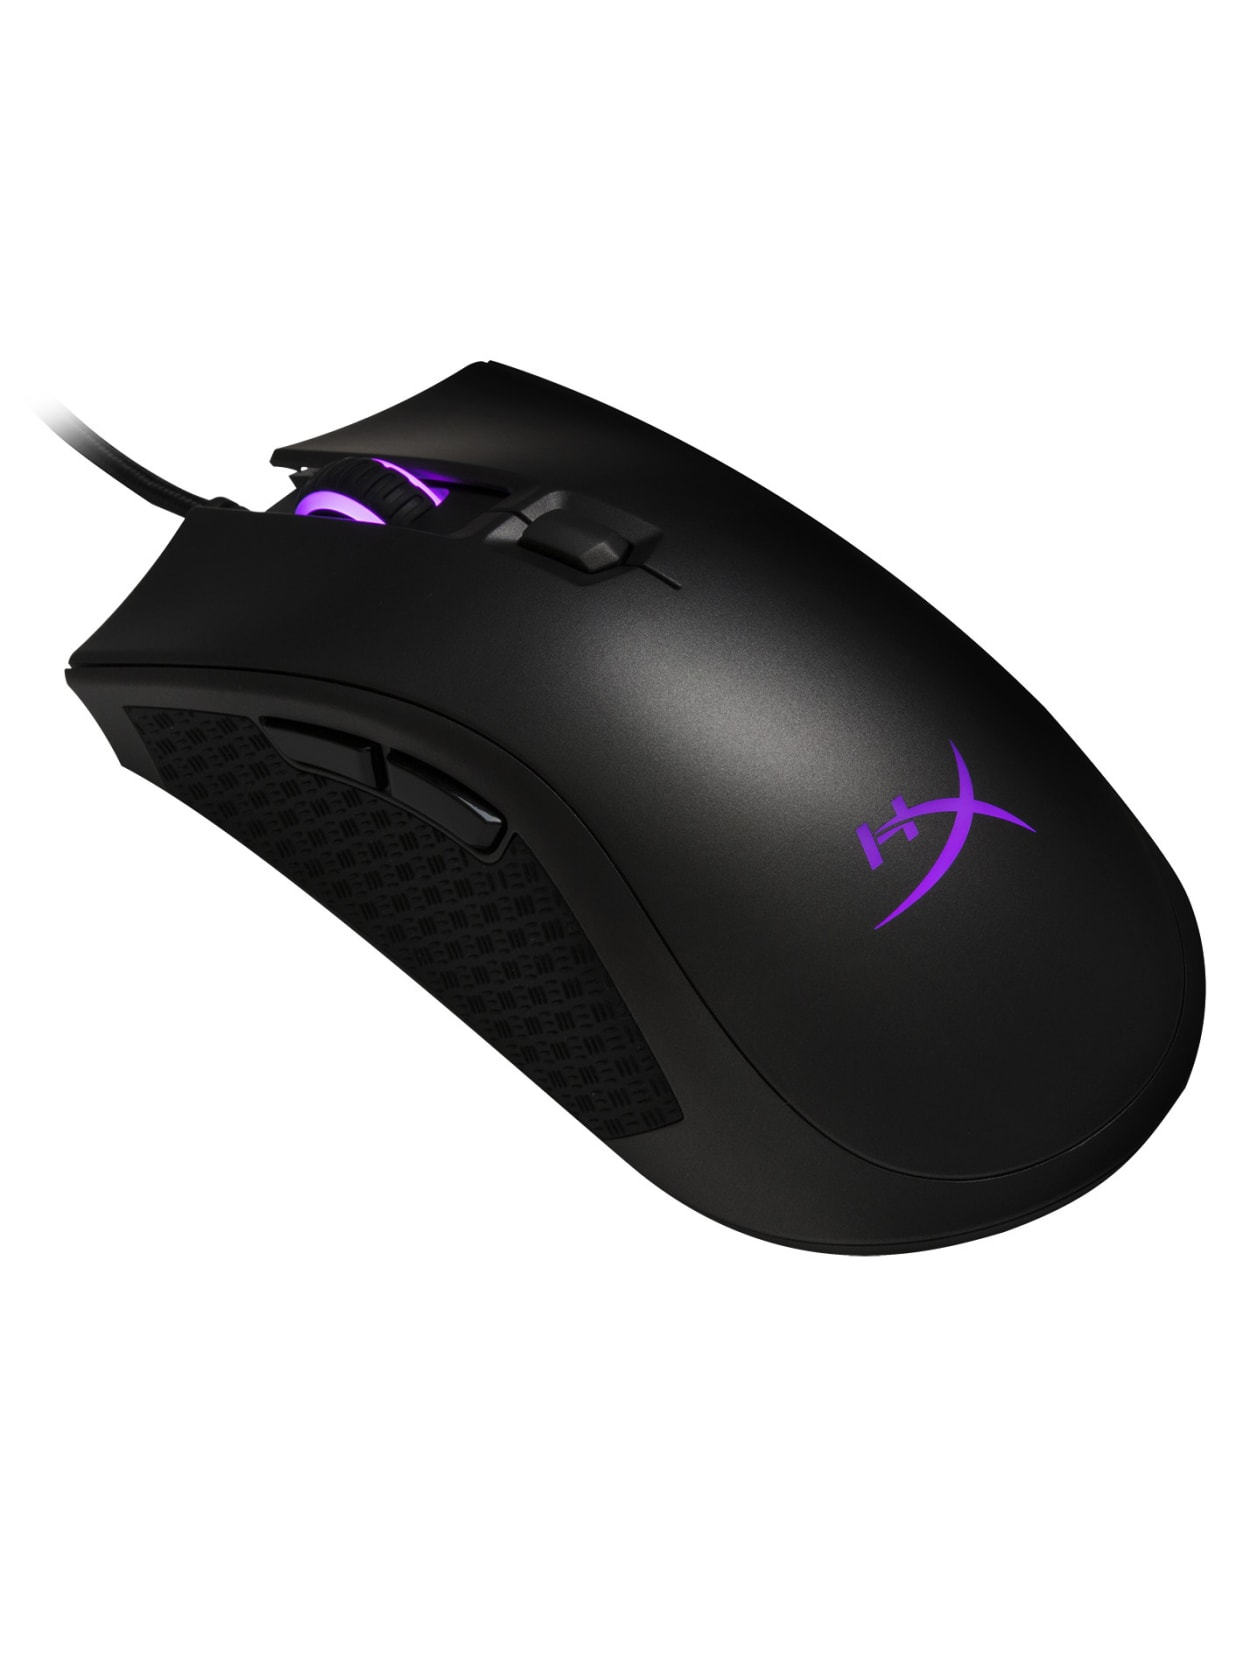 Hyperx Pulsefire Fps Pro Gaming Mouse 6 Button Black Pmw3310 Office Depot